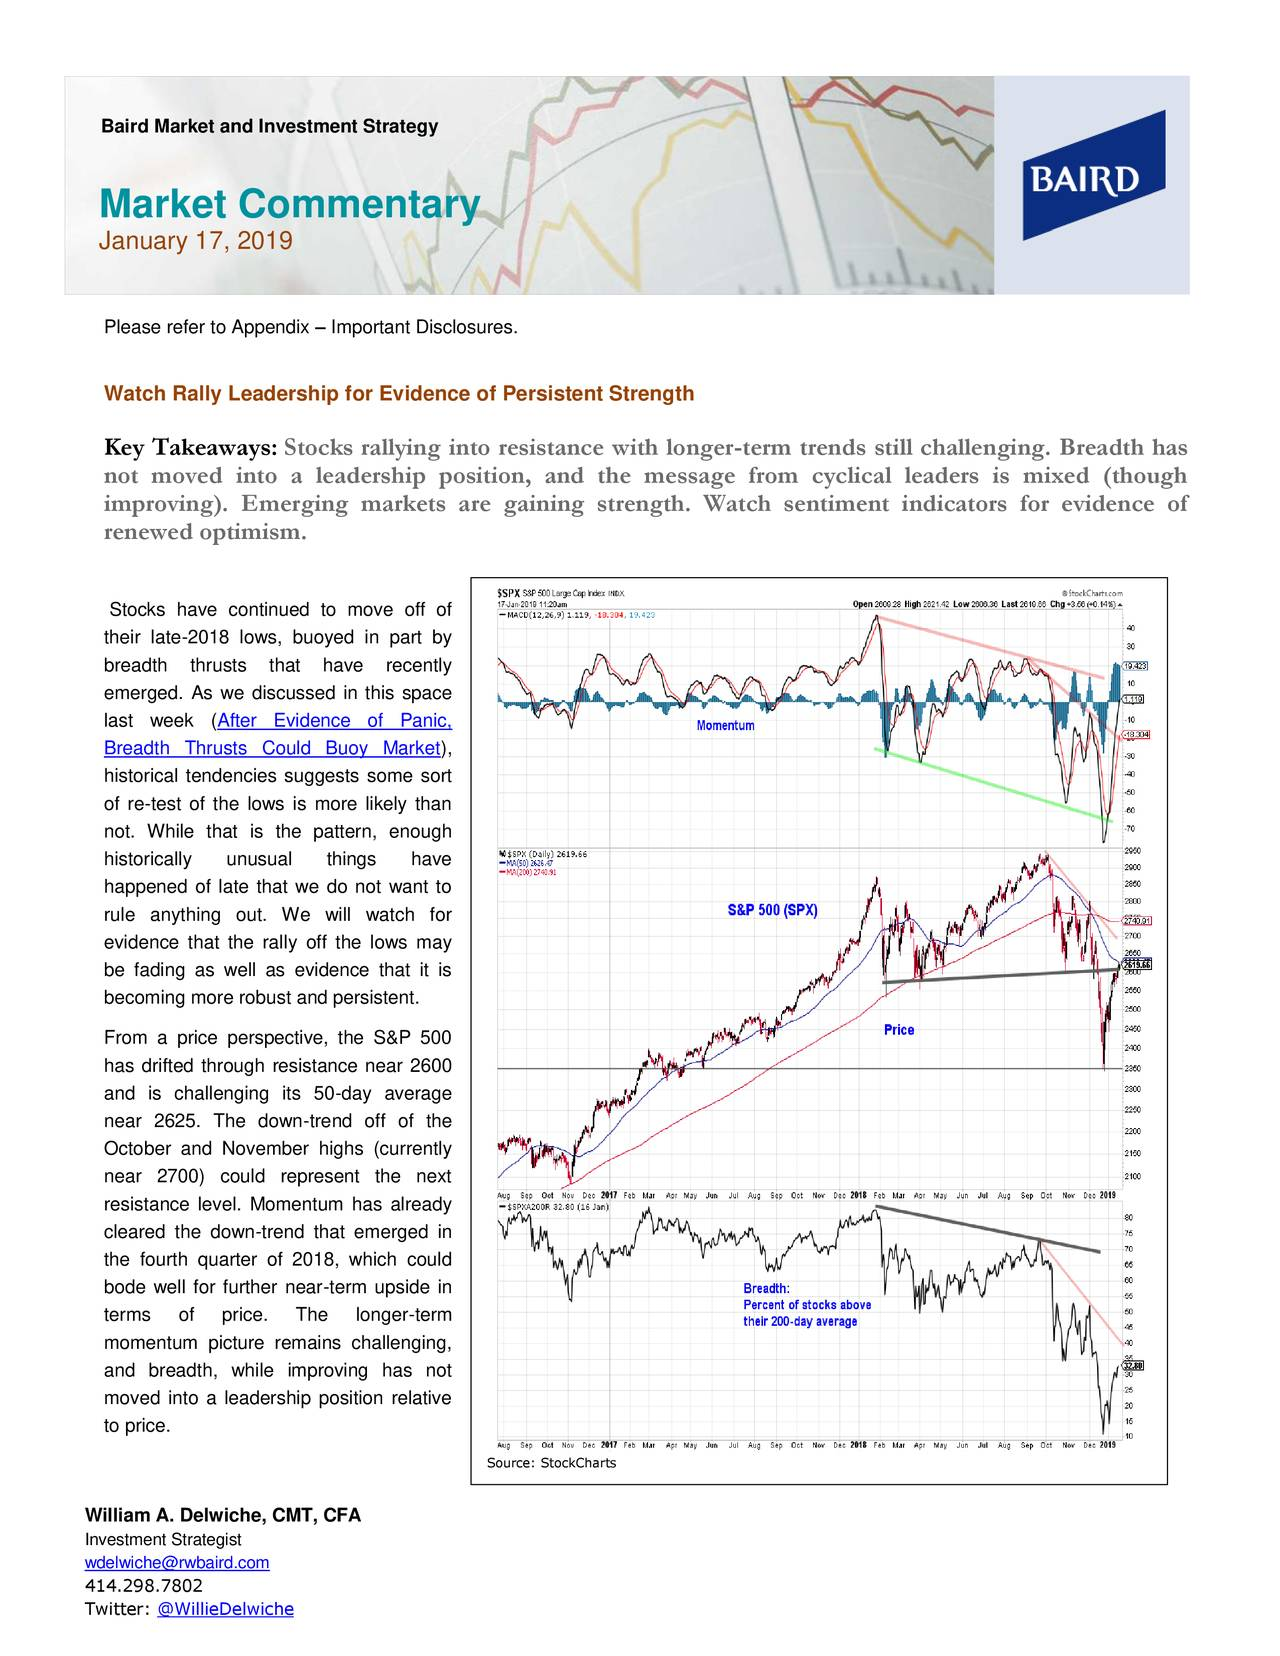 Market Commentary January 17, 2019 Please refer to Appendix – Important Disclosures. Watch Rally Leadership for Evidence of Persistent Strength Key Takeaways: Stocks rallying into resistance with longer-term trends still challenging. Breadth has not moved into a leadership position, and the message from cyclical leaders is mixed (though improving). Emerging markets are gaining strength. Watch sentiment indicators for evidence of renewed optimism. Stocks have continued to move off of their late-2018 lows, buoyed in part by breadth thrusts that have recently emerged. As we discussed in this space last week (After Evidence of Panic, Breadth Thrusts Could Buoy Market), historical tendencies suggests some sort of re-test of the lows is more likely than not. While that is the pattern, enough historically unusual things have happened of late that we do not want to rule anything out. We will watch for evidence that the rally off the lows may be fading as well as evidence that it is becoming more robust and persistent. From a price perspective, the S&P 500 has drifted through resistance near 2600 and is challenging its 50-day average near 2625. The down-trend off of the October and November highs (currently near 2700) could represent the next resistance level. Momentum has already cleared the down-trend that emerged in the fourth quarter of 2018, which could bode well for further near-term upside in terms of price. The longer-term momentum picture remains challenging, and breadth, while improving has not moved into a leadership position relative to price. Source: StockCharts William A. Delwiche, CMT, CFA Investment Strategist wdelwiche@rwbaird.com 414.298.7802 Twitter: @WillieDelwiche